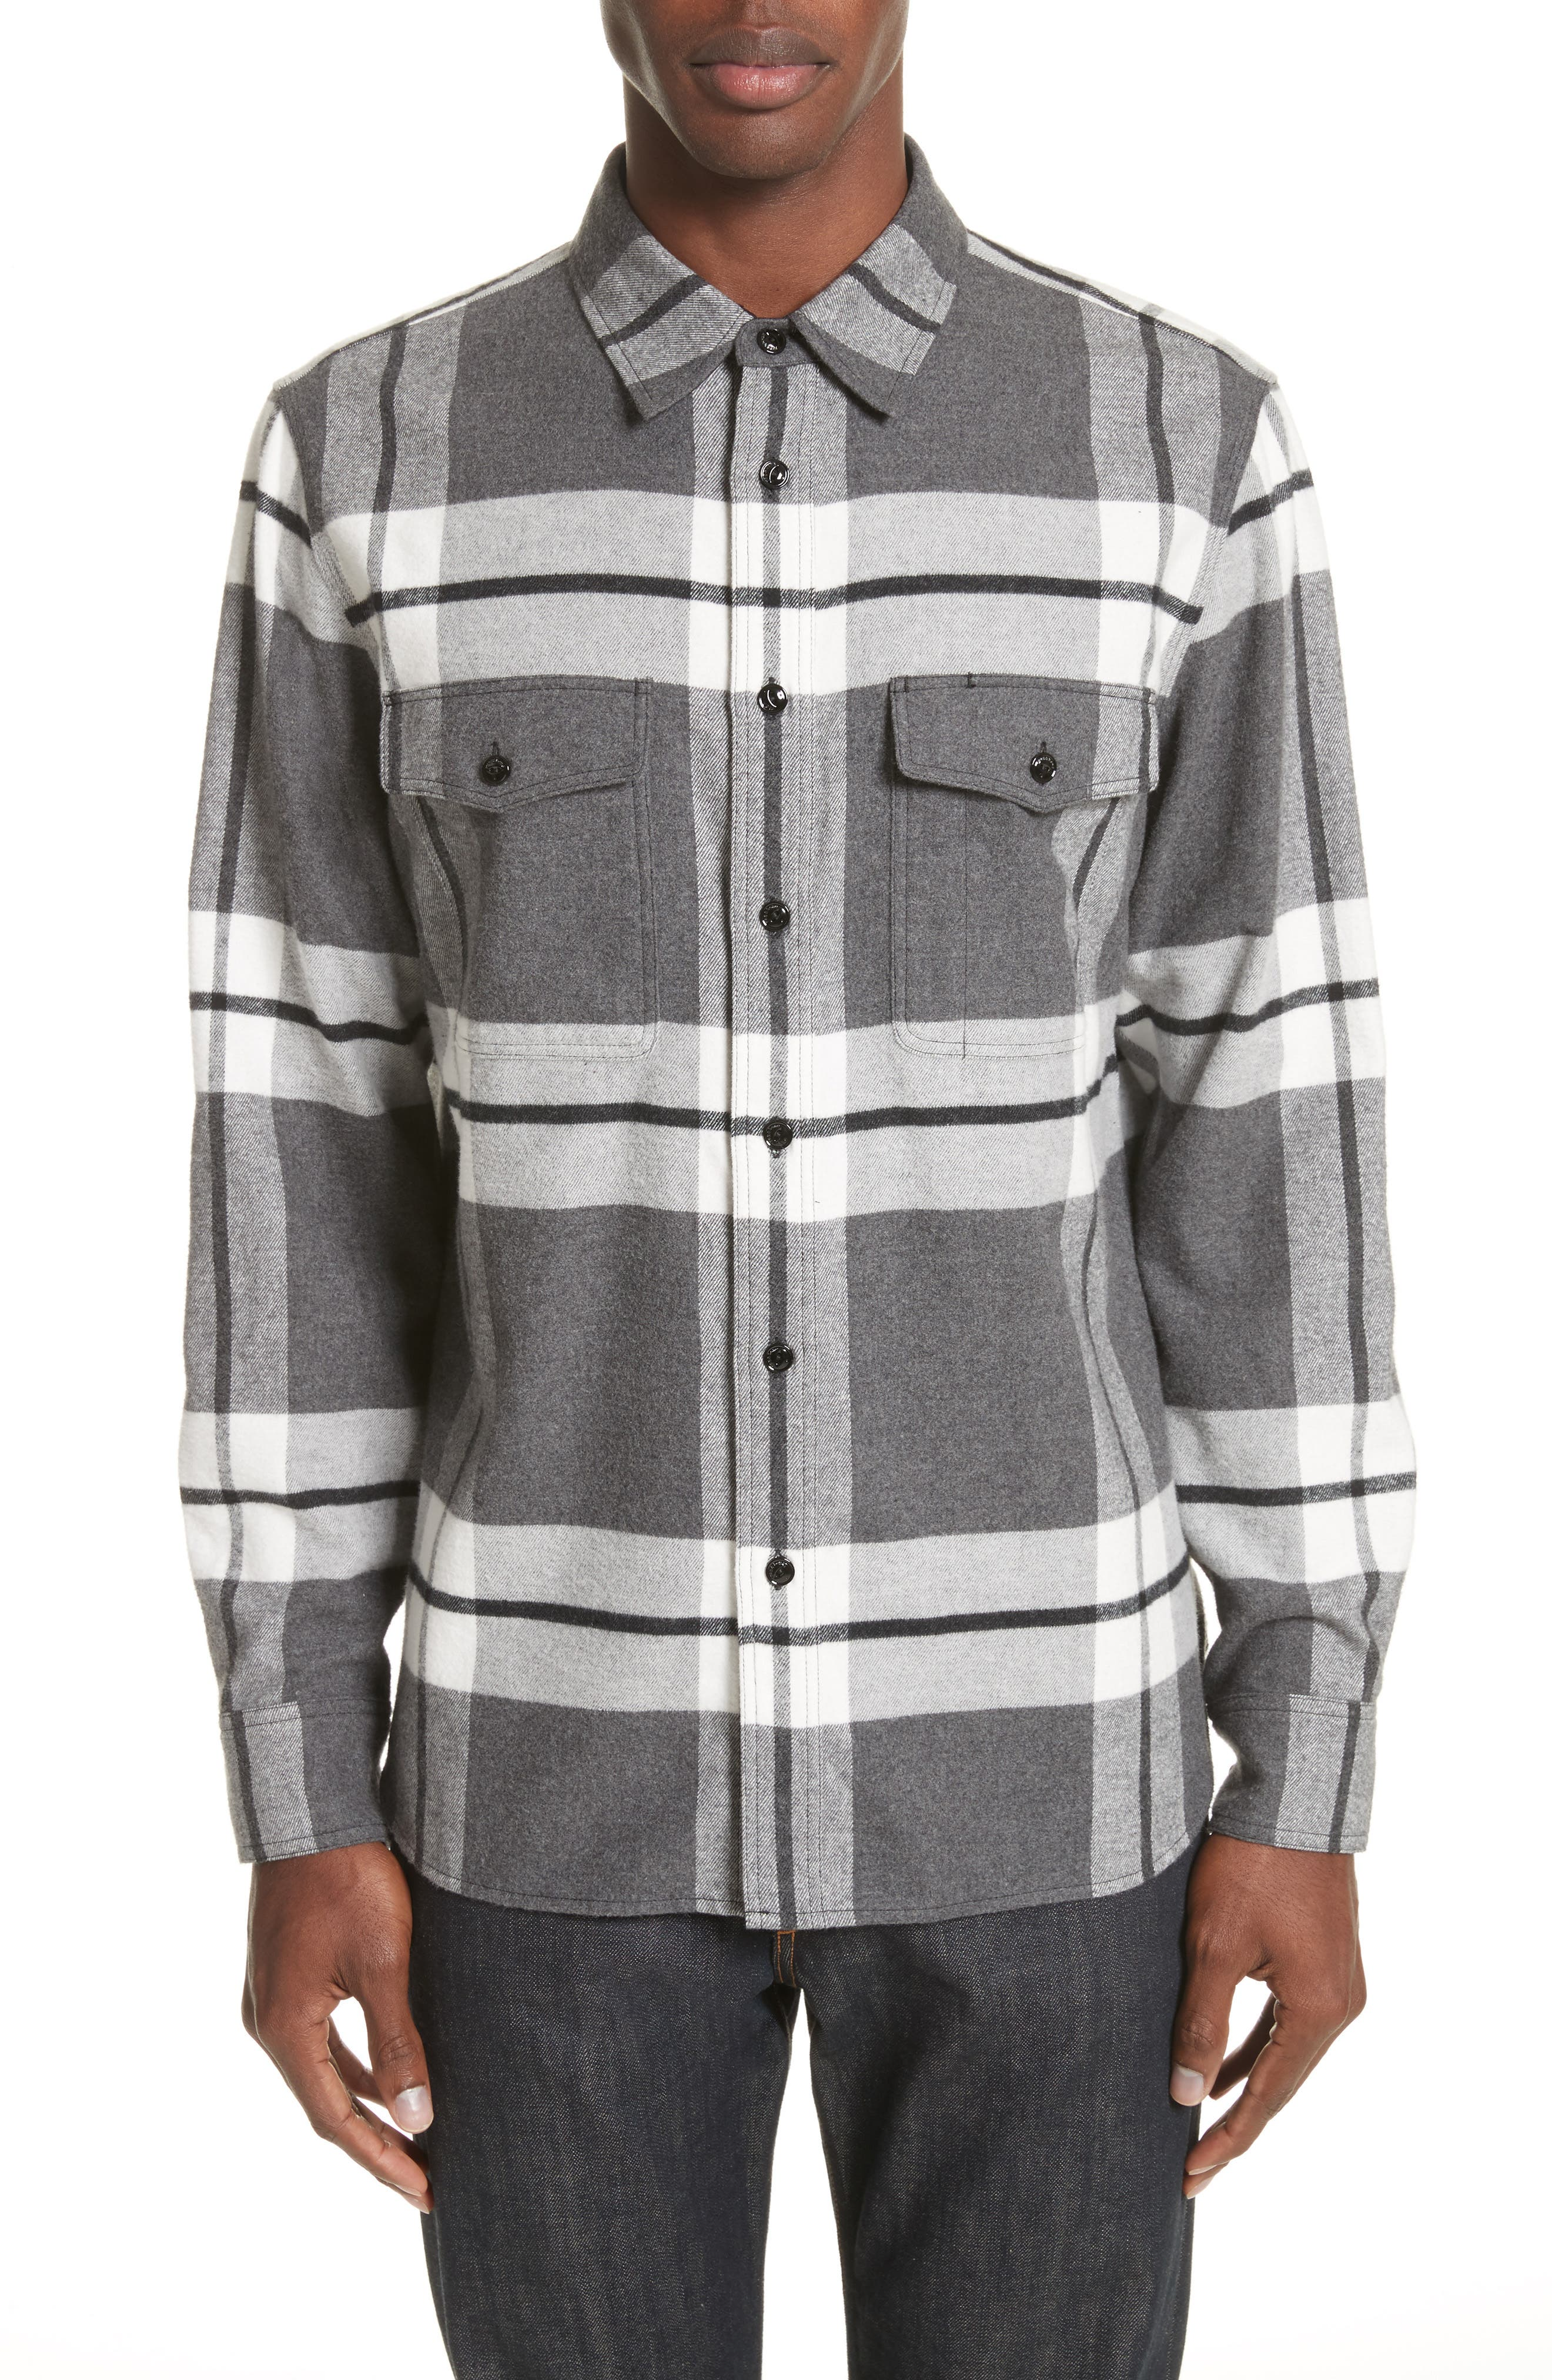 rag & bbone Jack Plaid Shirt Jacket,                             Main thumbnail 1, color,                             068